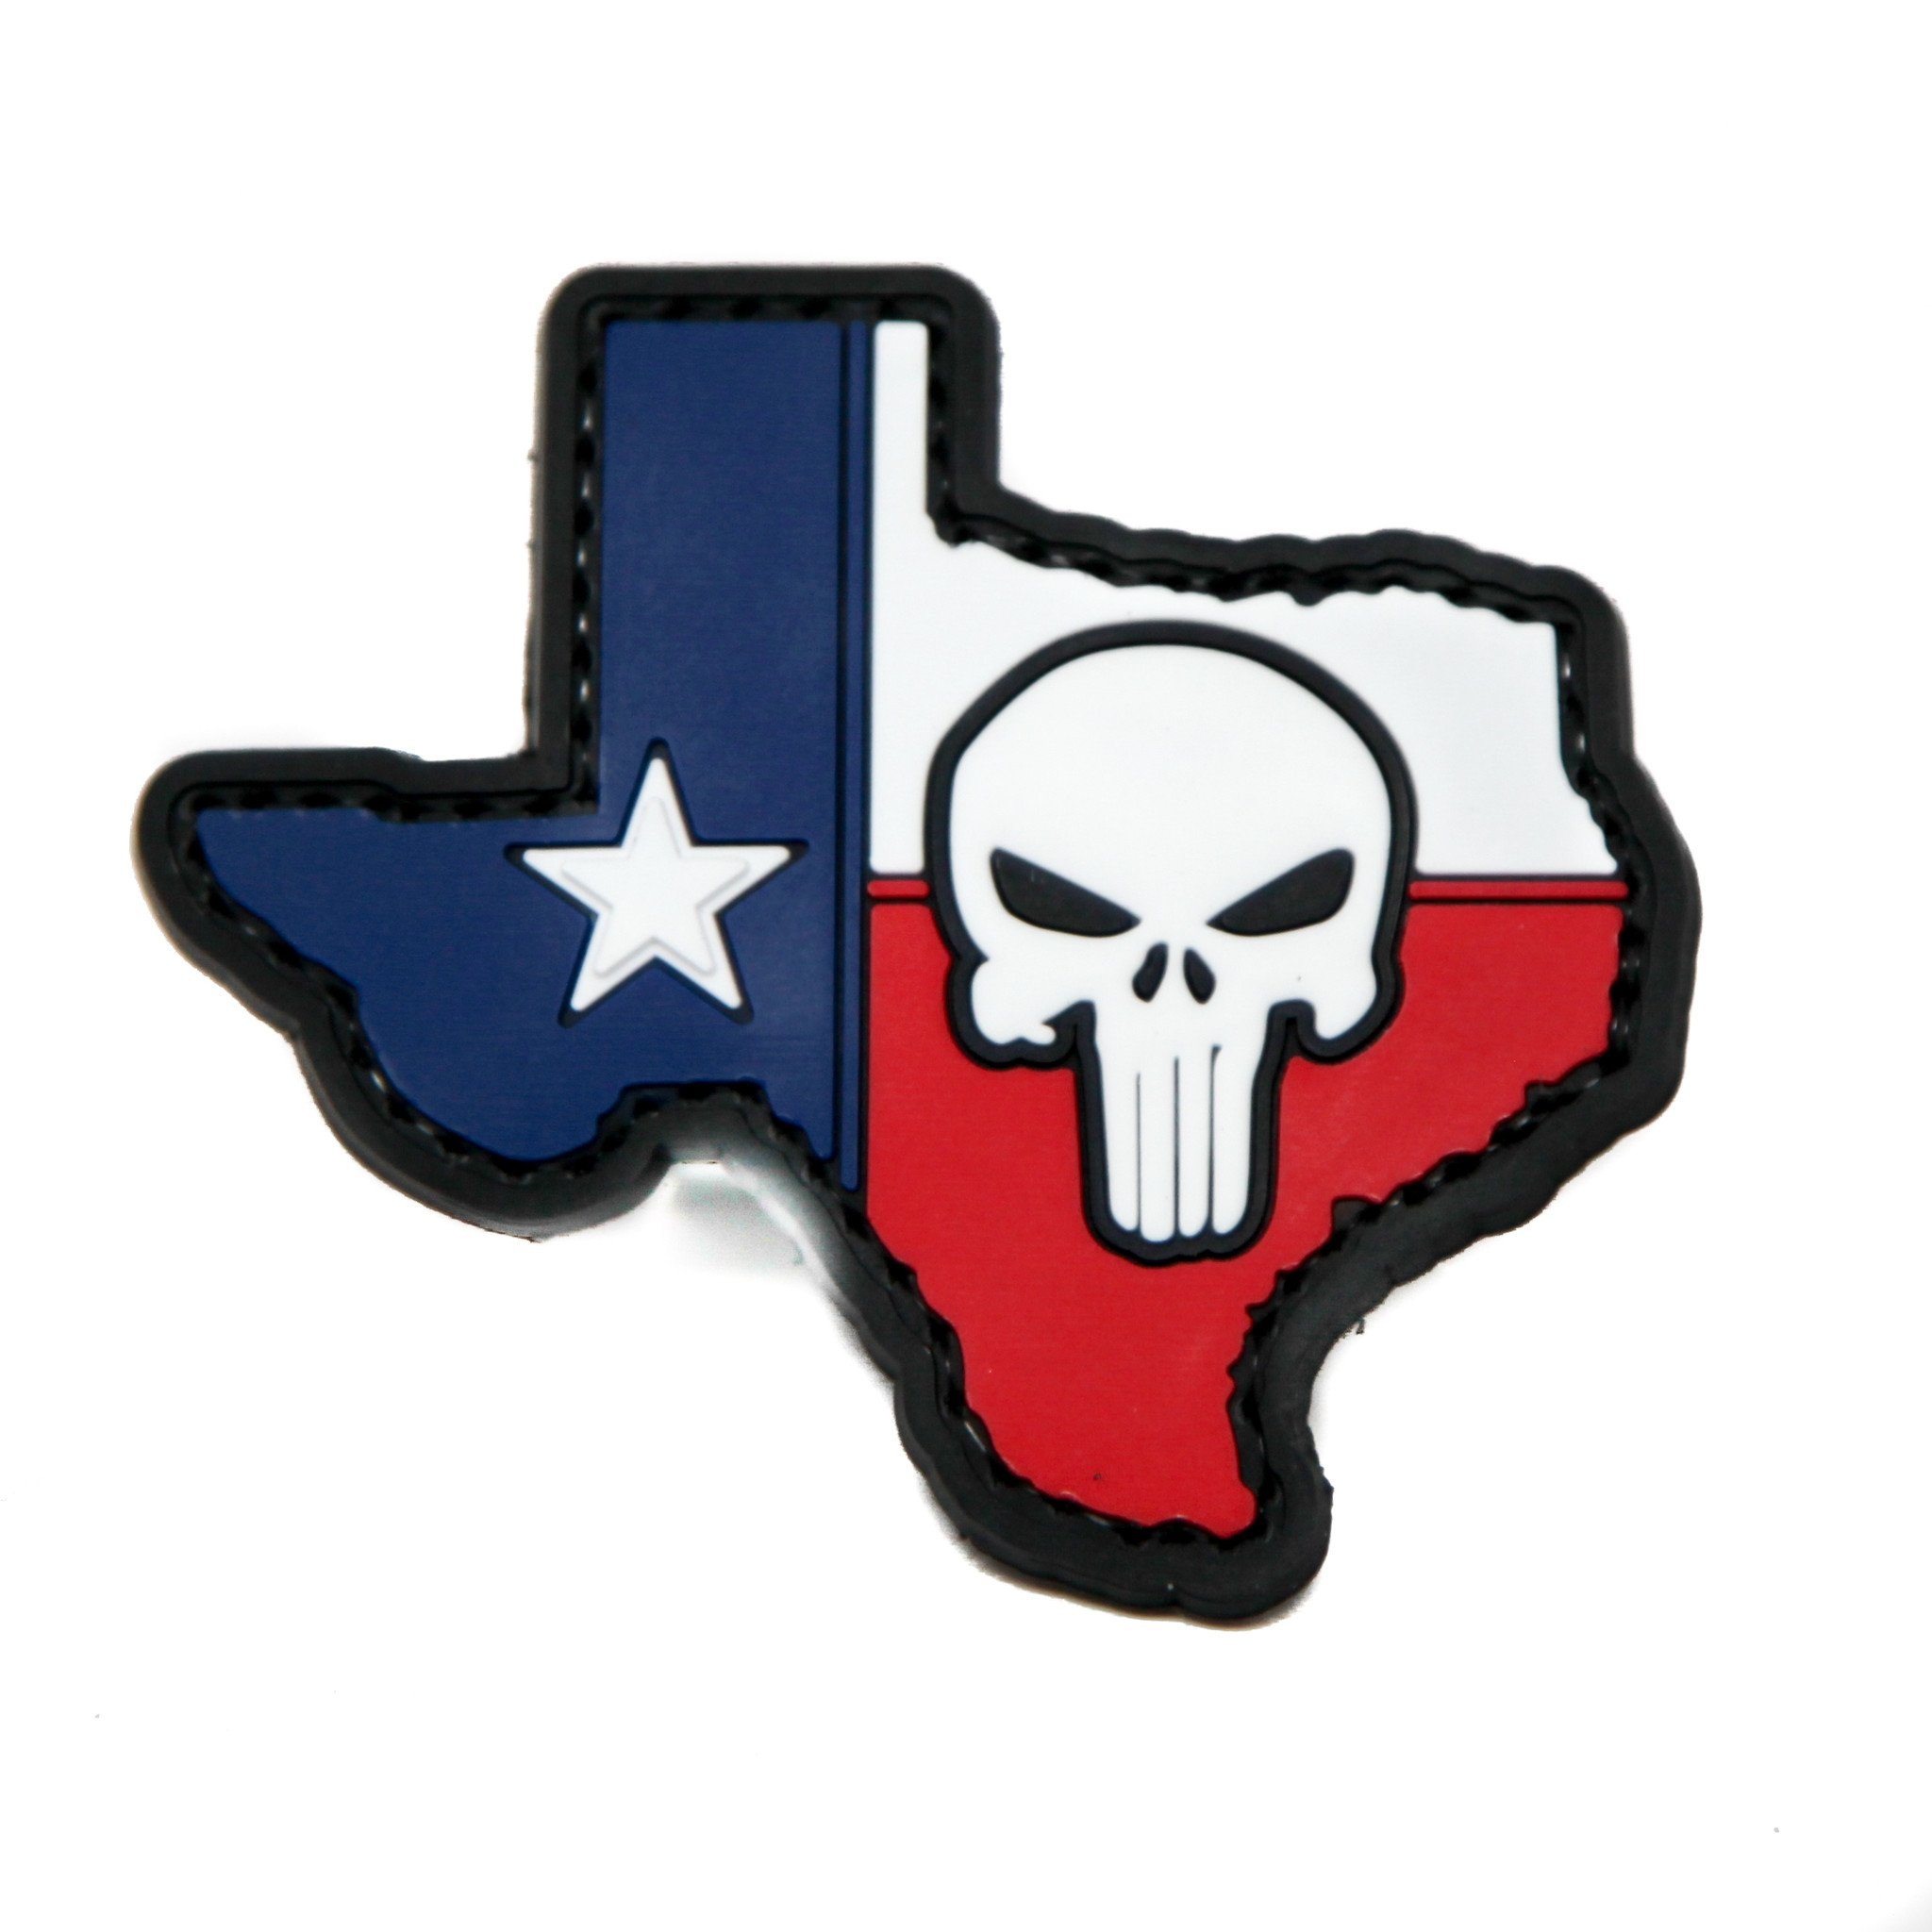 2048x2048 Texas State Flag With Punisher PVC Morale Patch